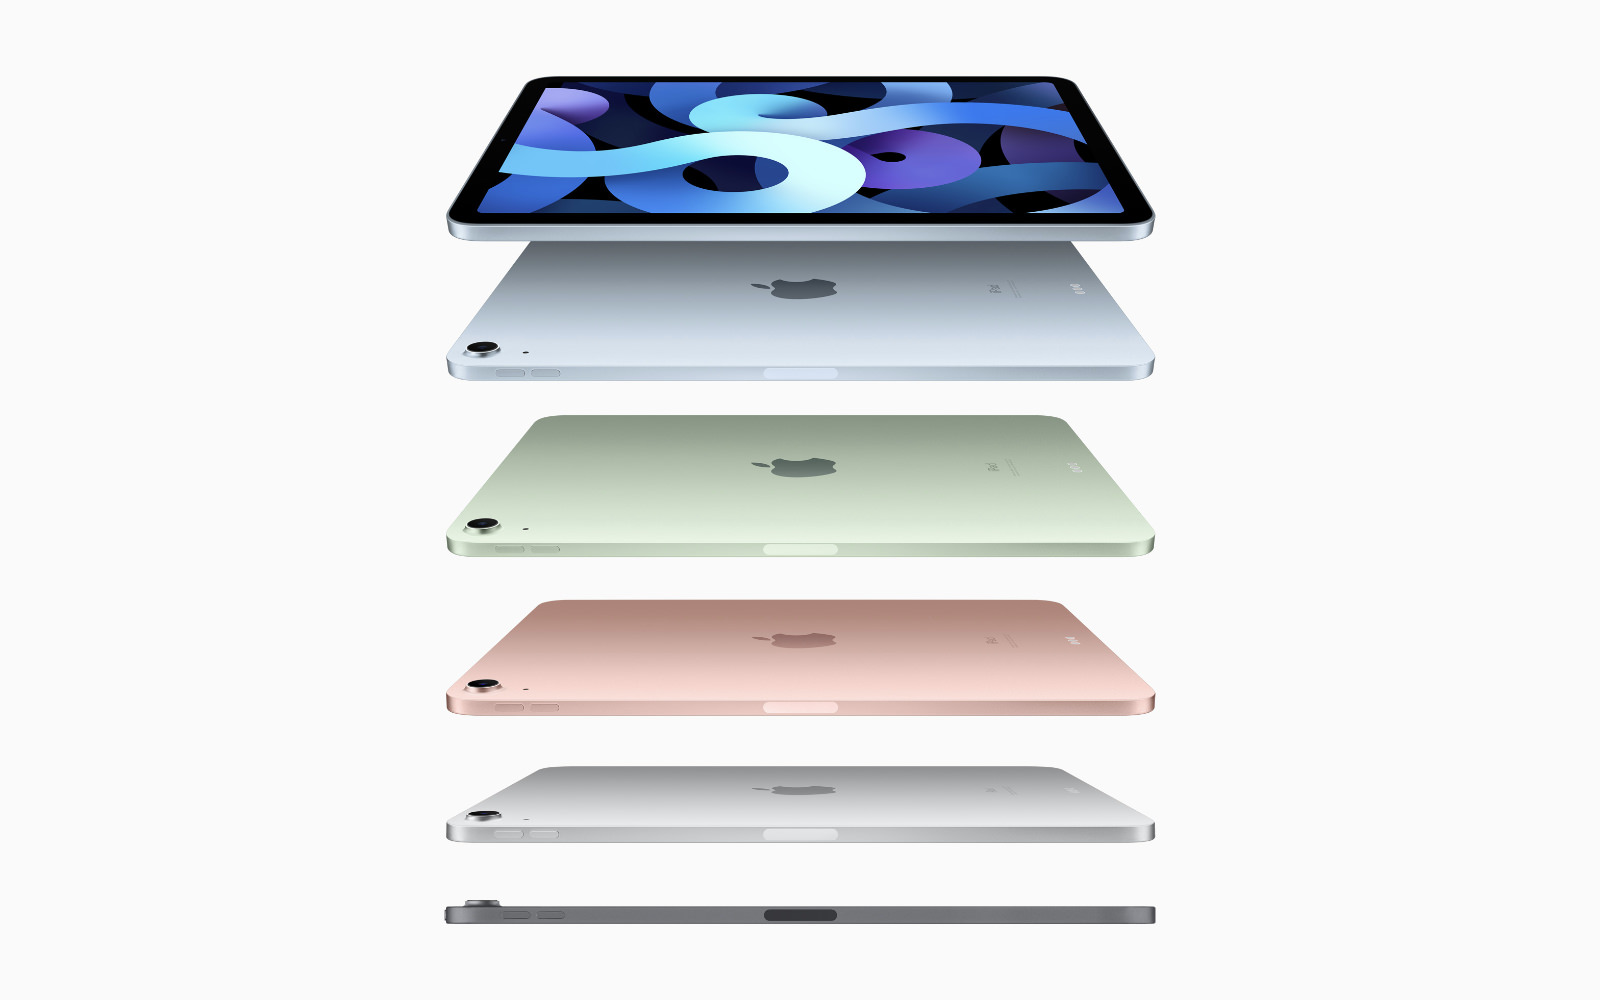 ipad-air-4thgen-top.jpg